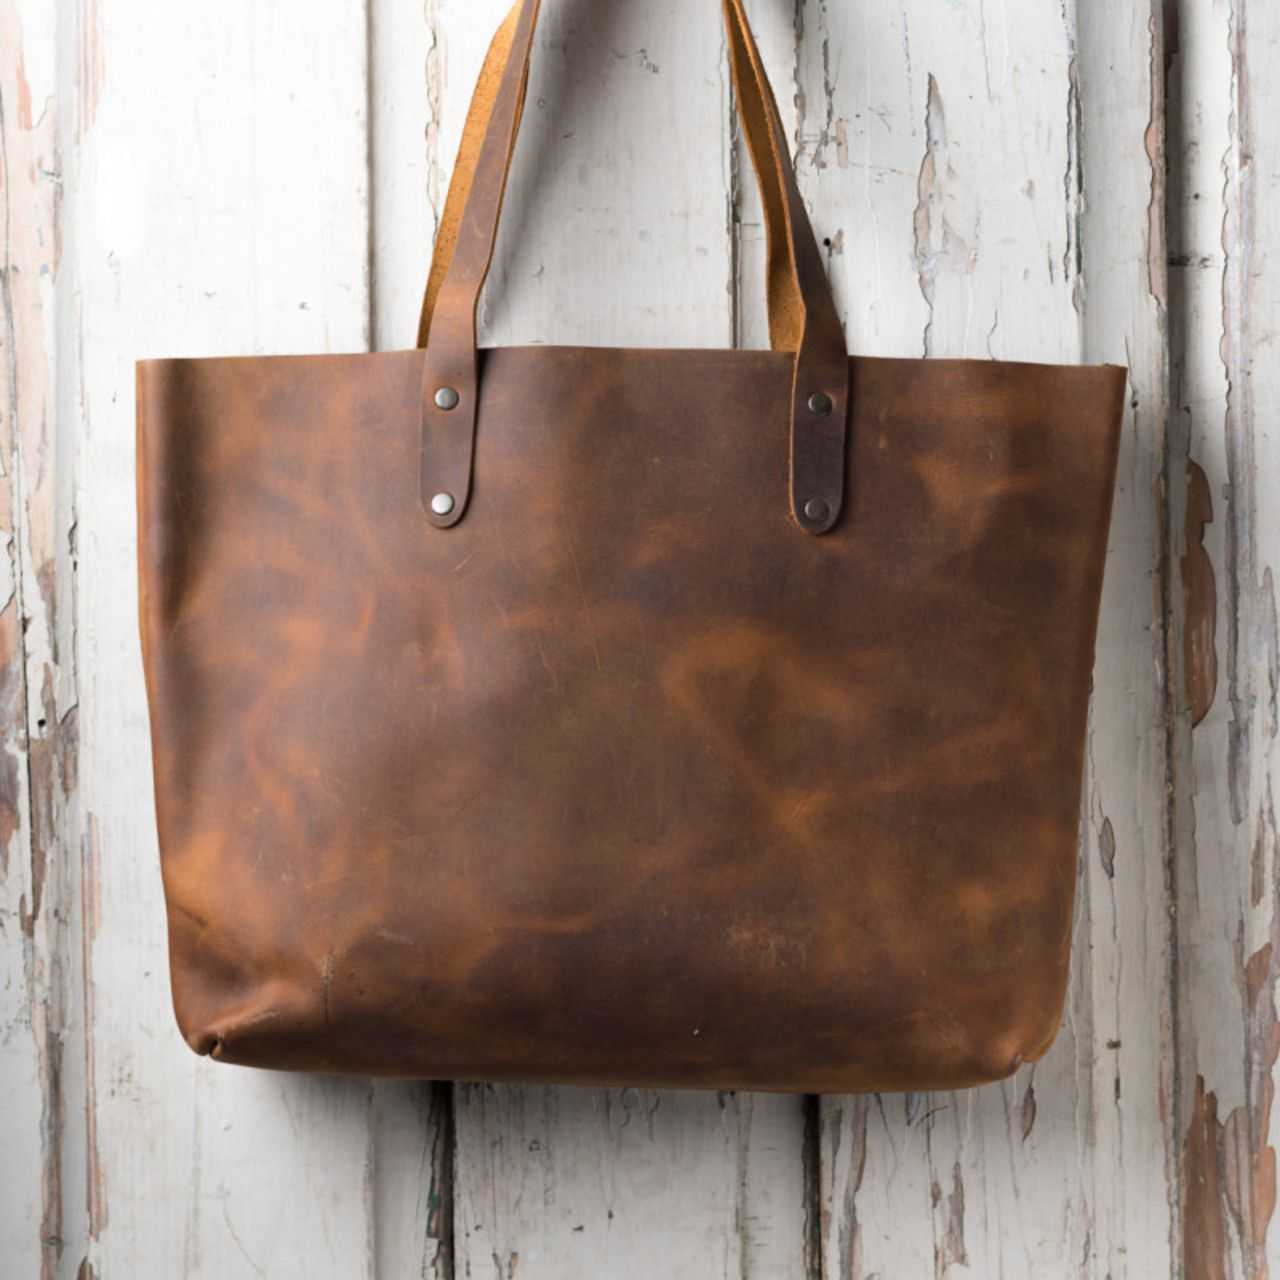 Simple Tote in tobacco